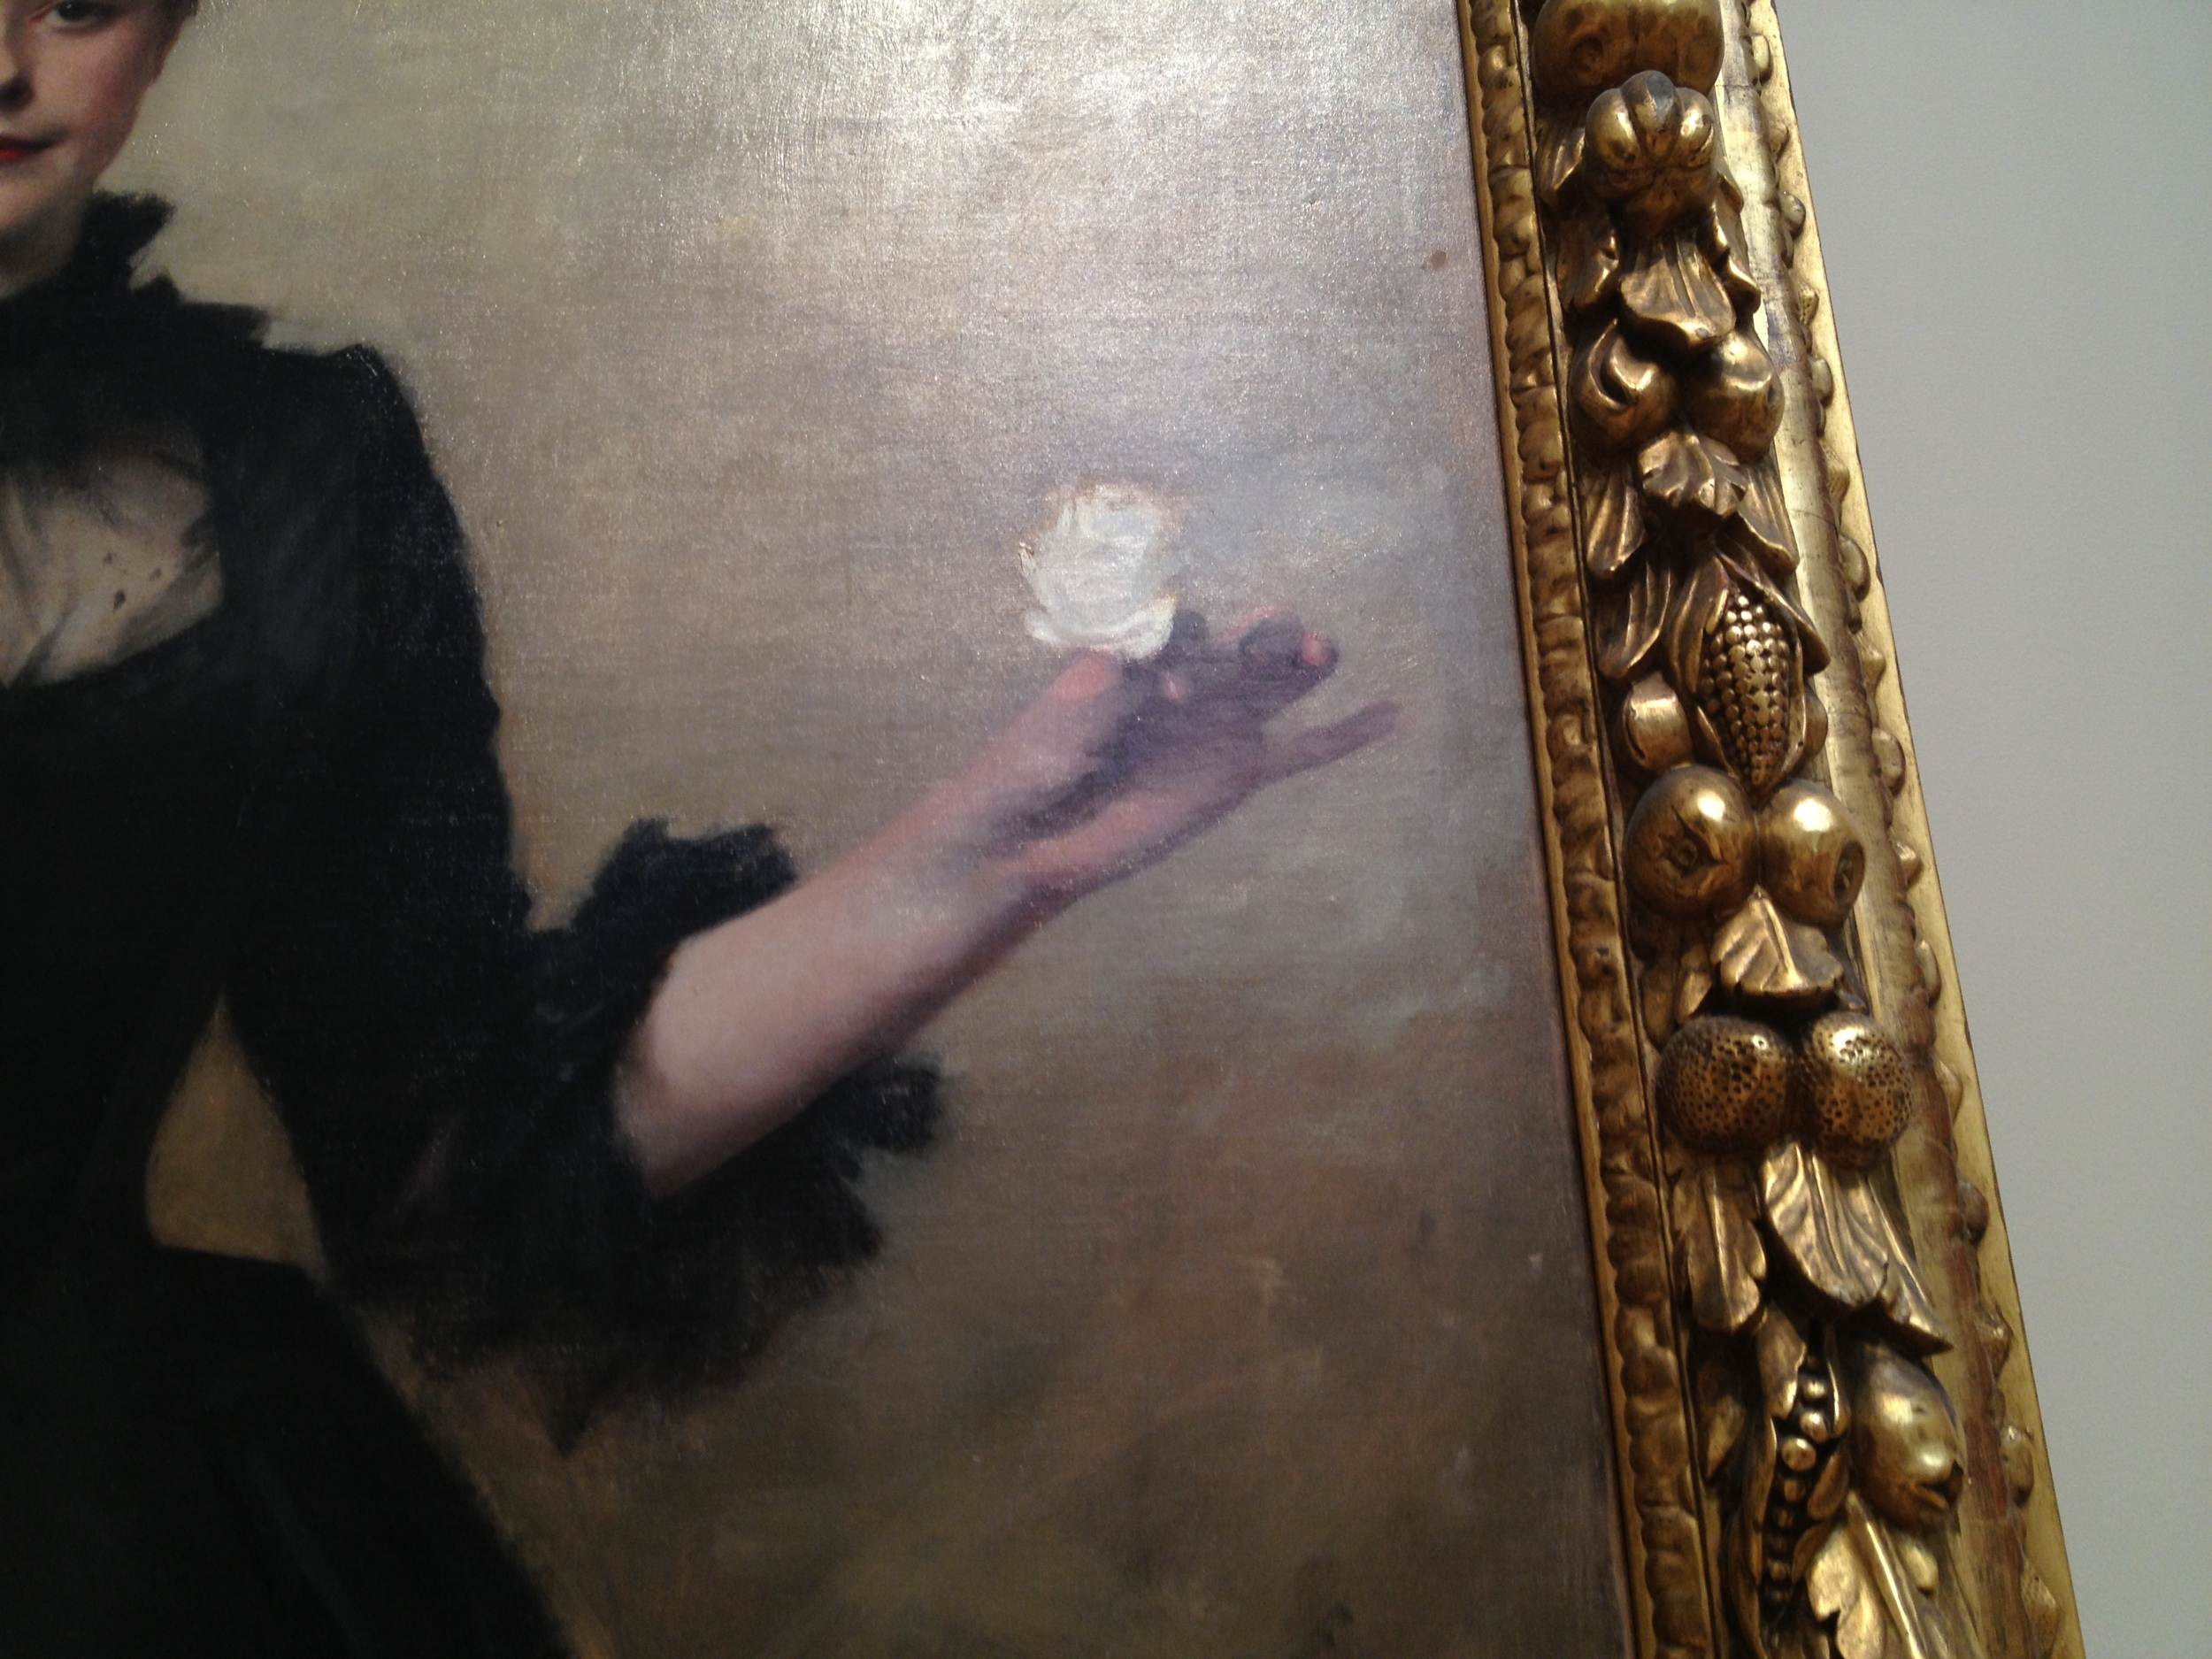 Lady with the Rose  (Charlotte Louise Burckhardt)  detail  John Singer Sargent 1882 Oil on canvas